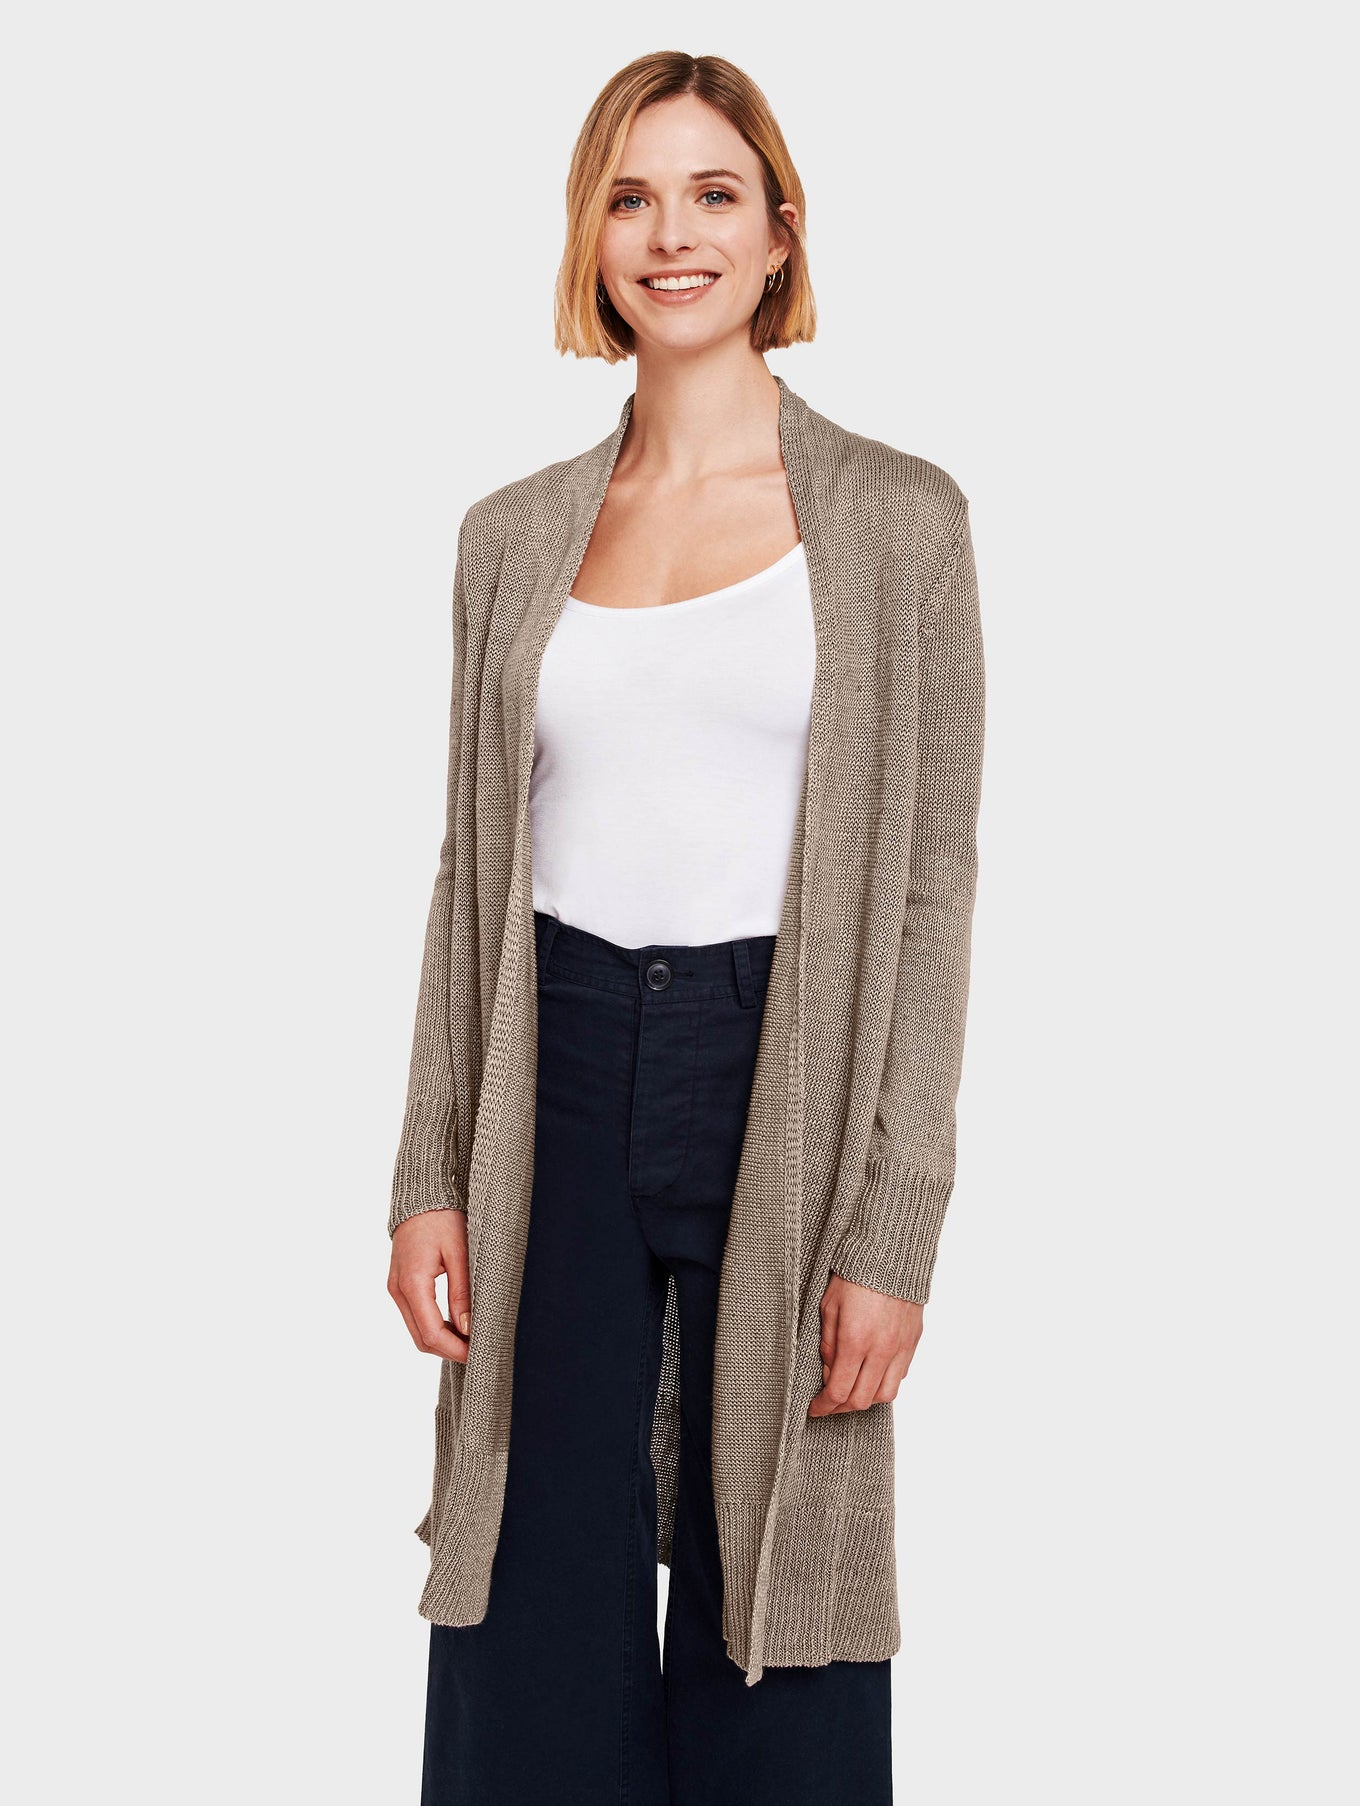 Corded Linen Long Open Cardigan - Taupe Heather - Image 2